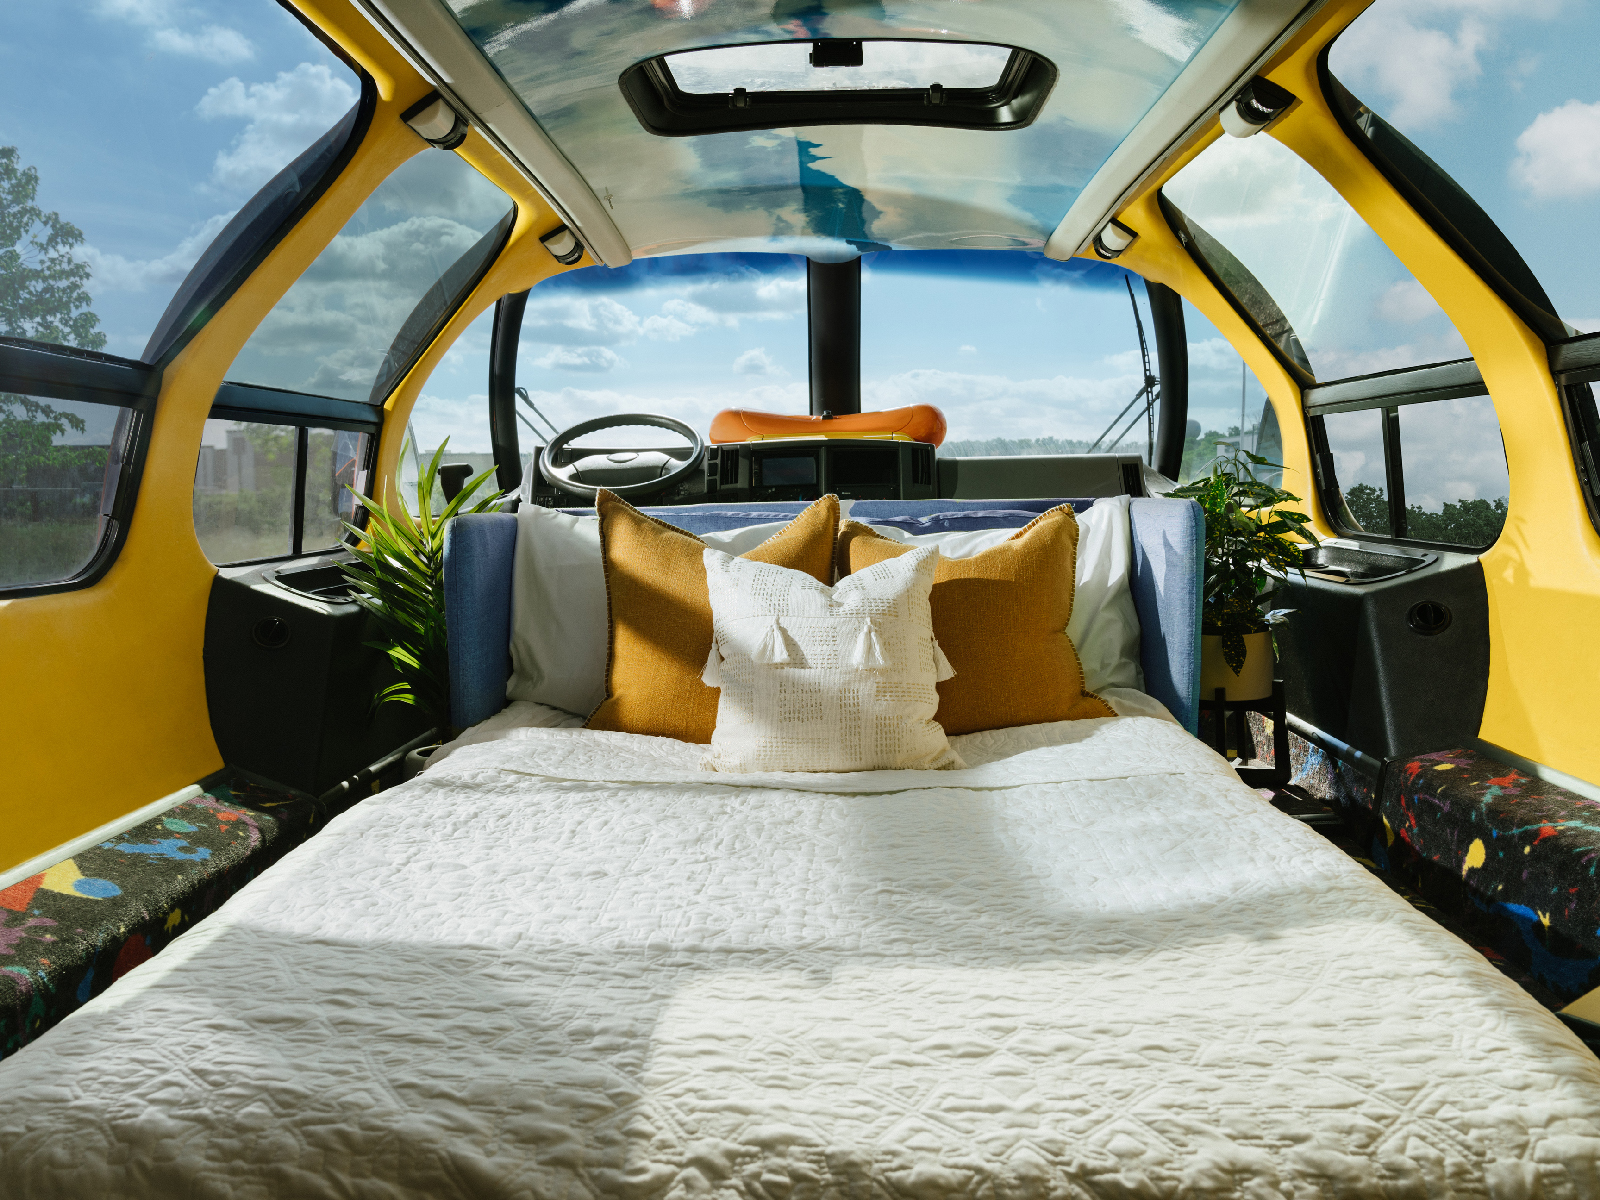 wienermobile-airbnb-1-FT-BLOG0719.jpg